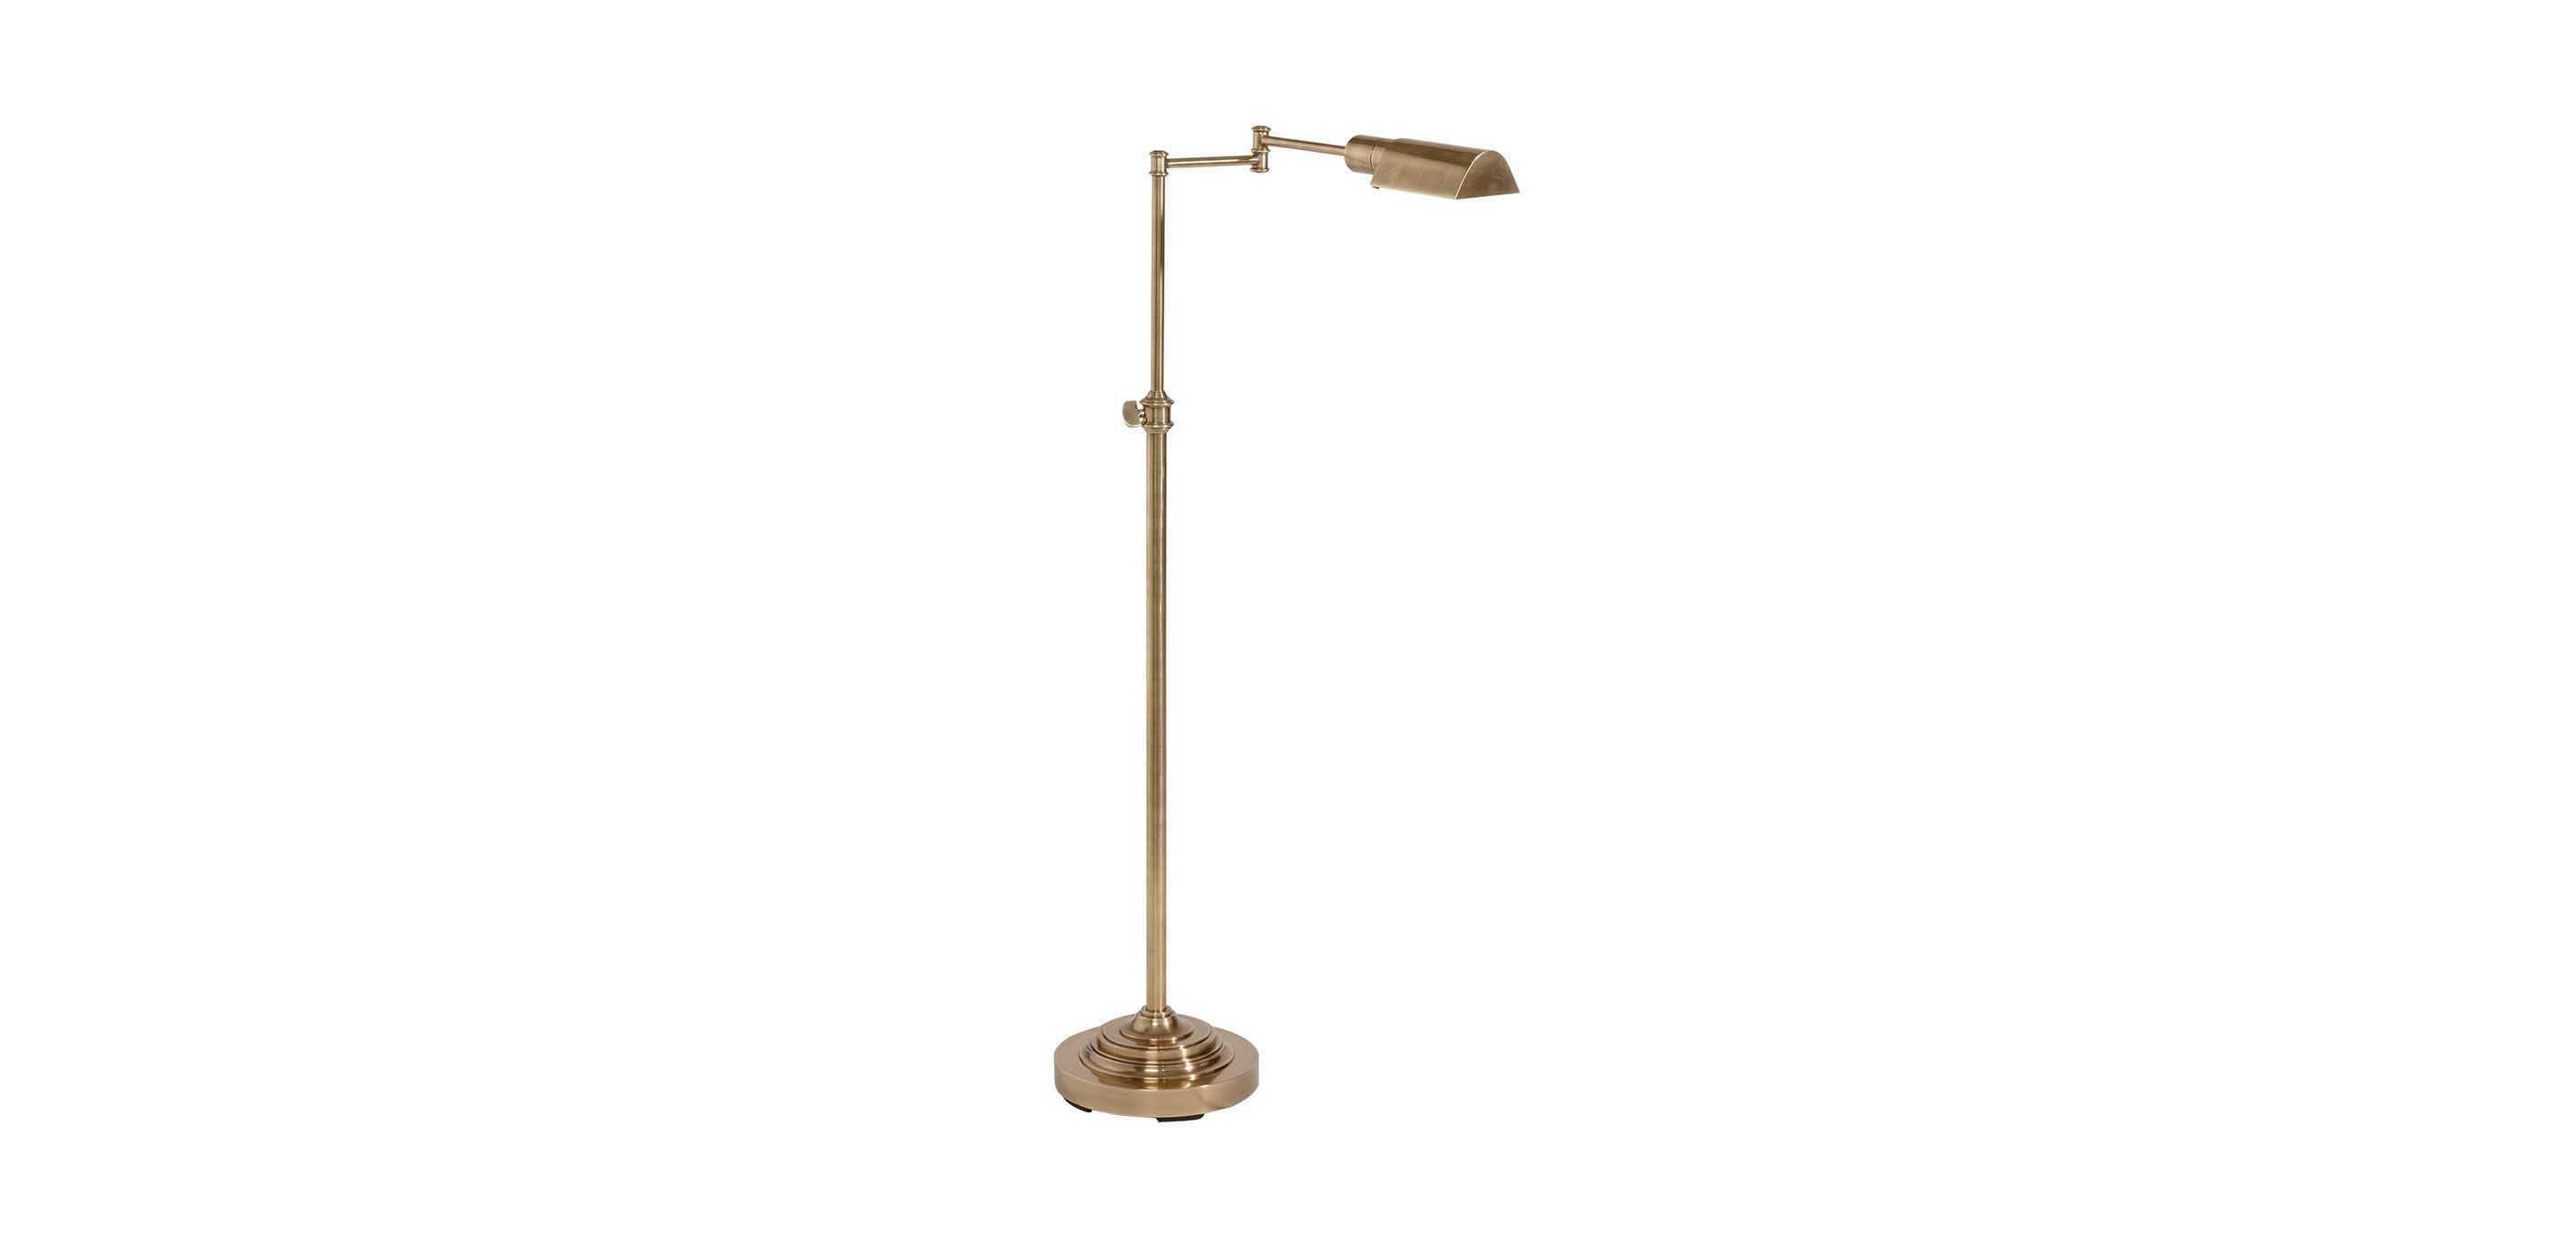 Brass pharmacy floor lamp floor lamps ethan allen for Homebase chandelier floor lamp